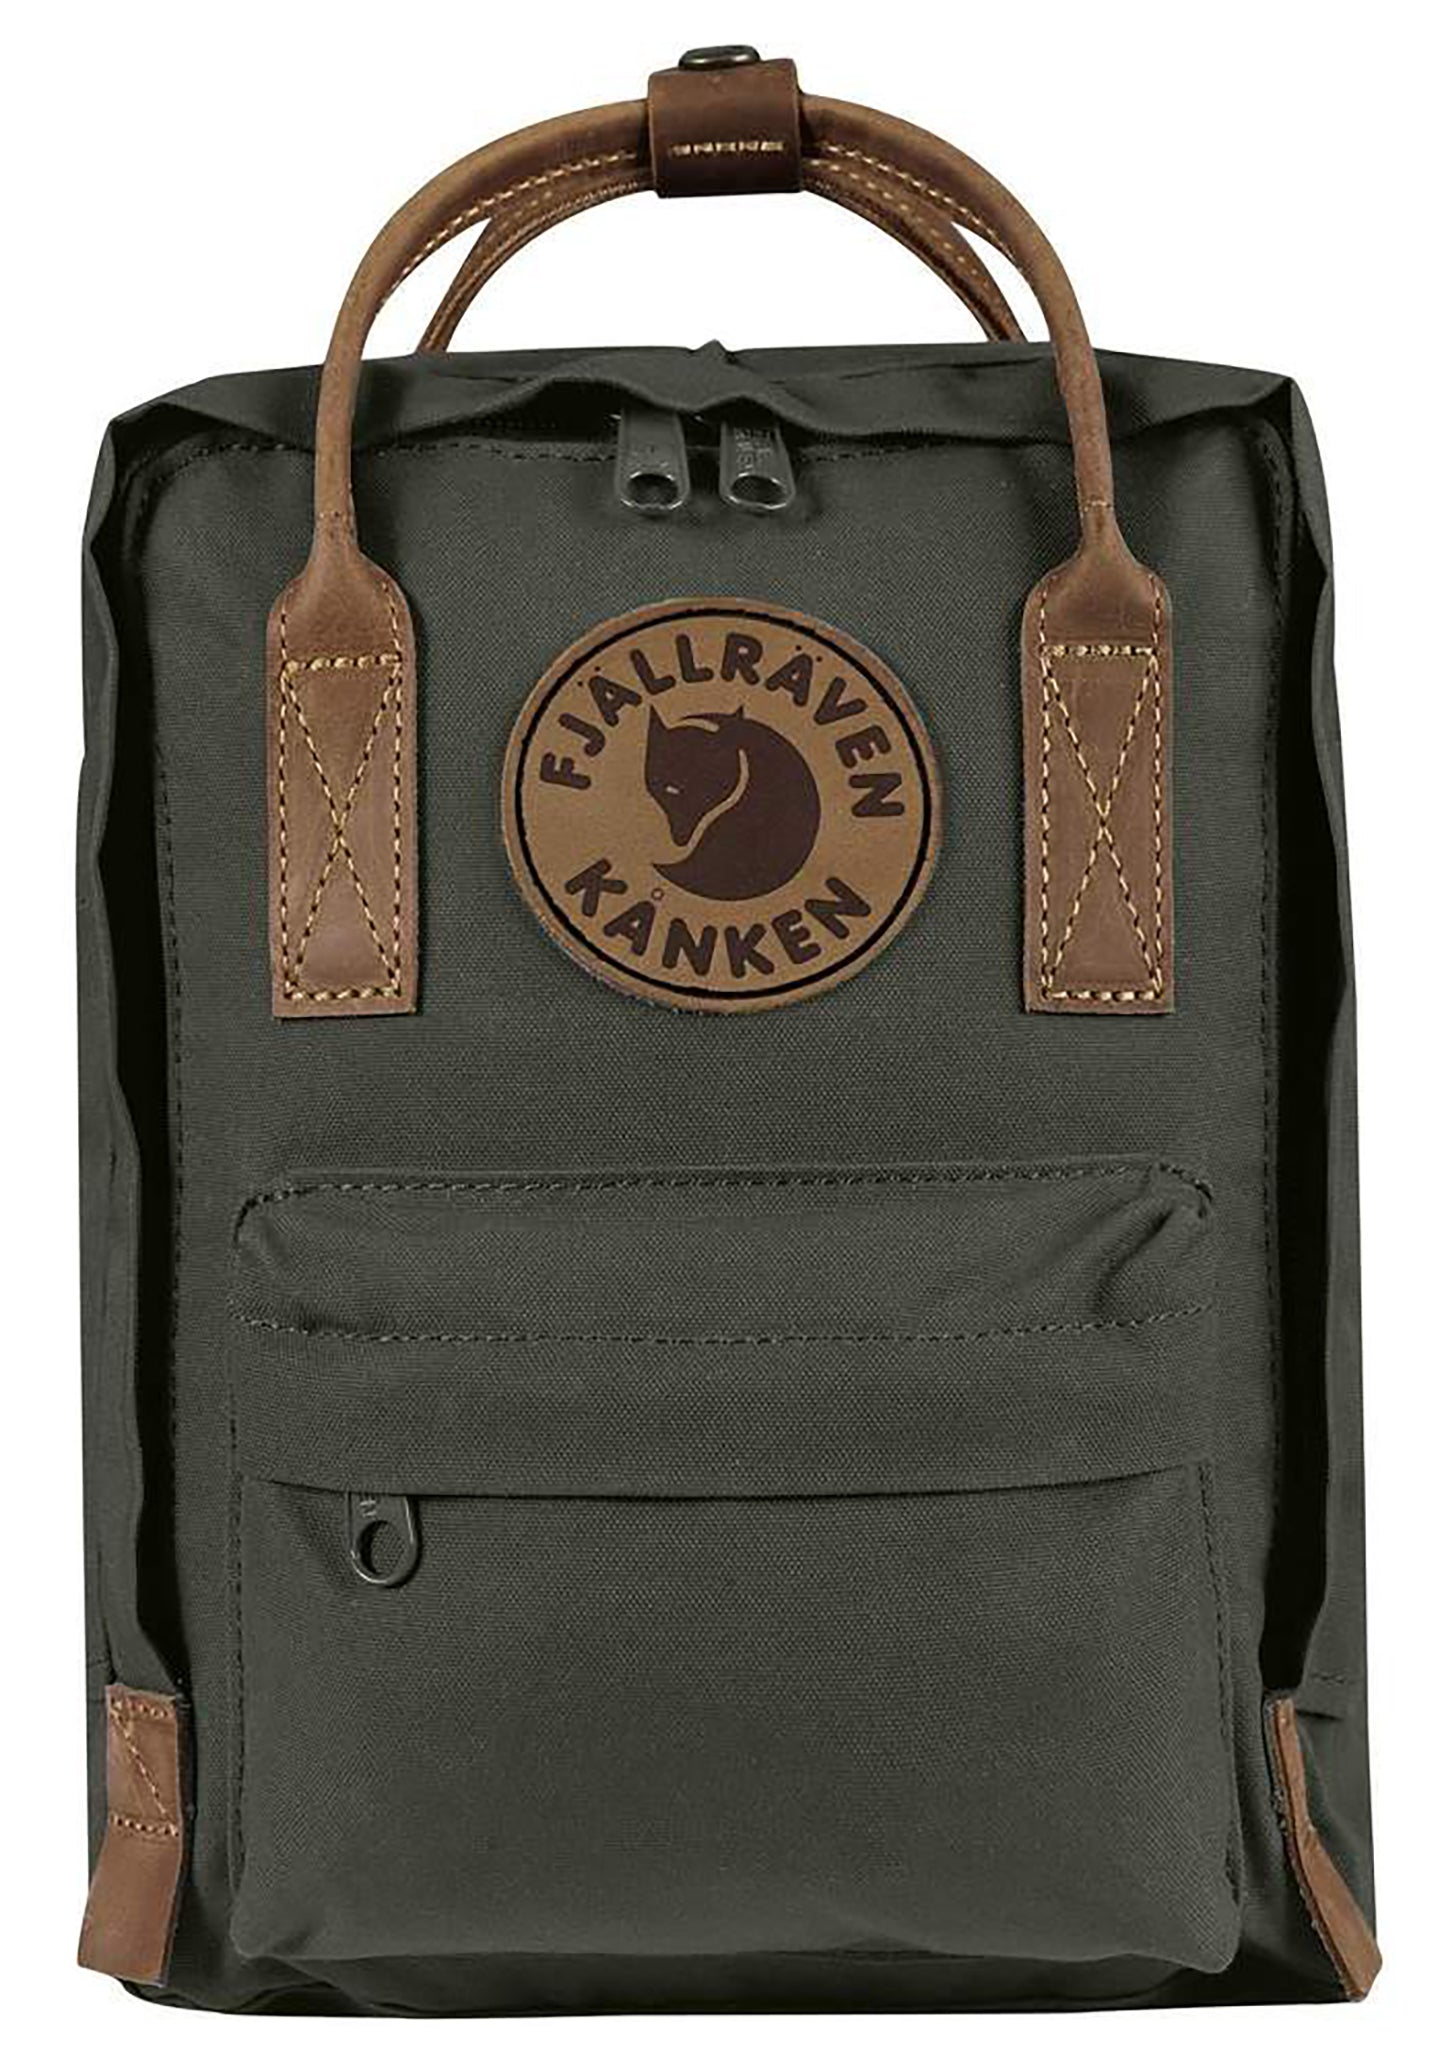 Kanken No. 2 Mini Backpack in Deep Forest